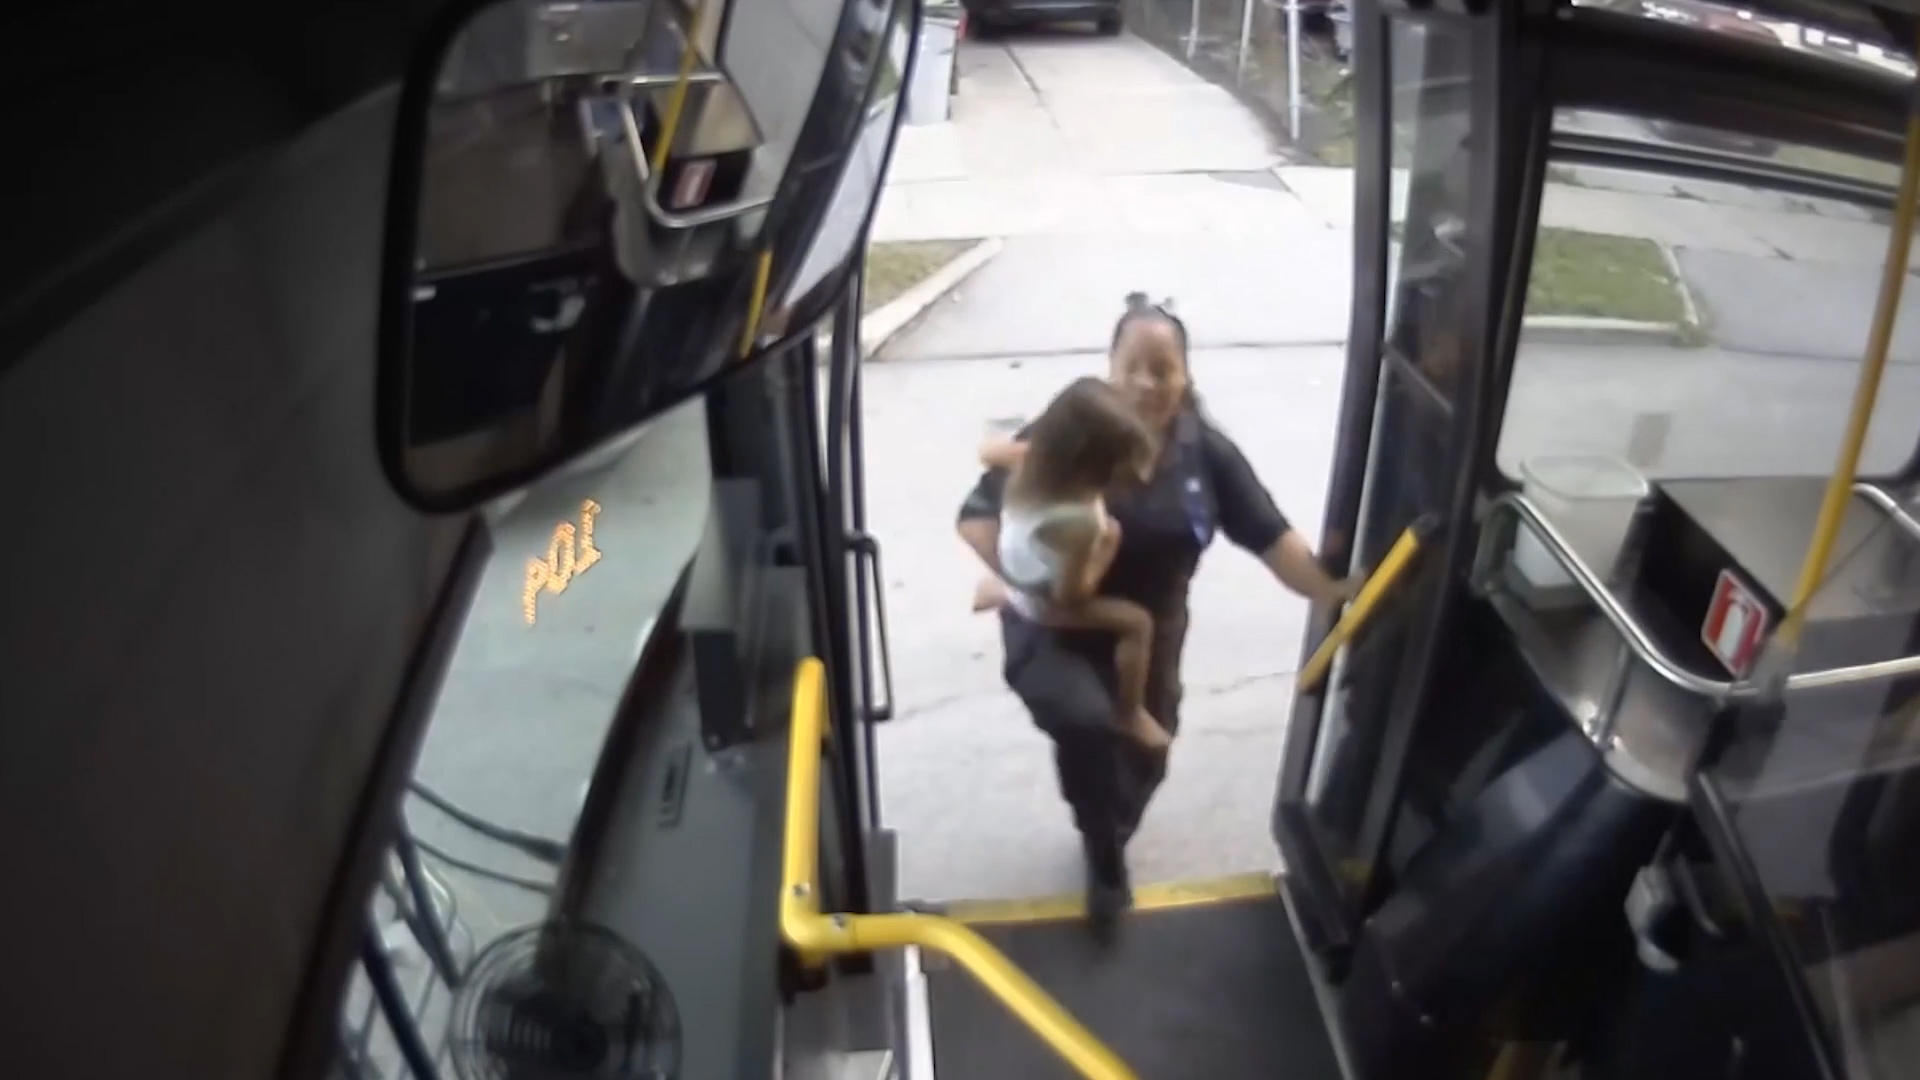 Video shows Milwaukee bus driver rescuing young child wandering barefoot in cold